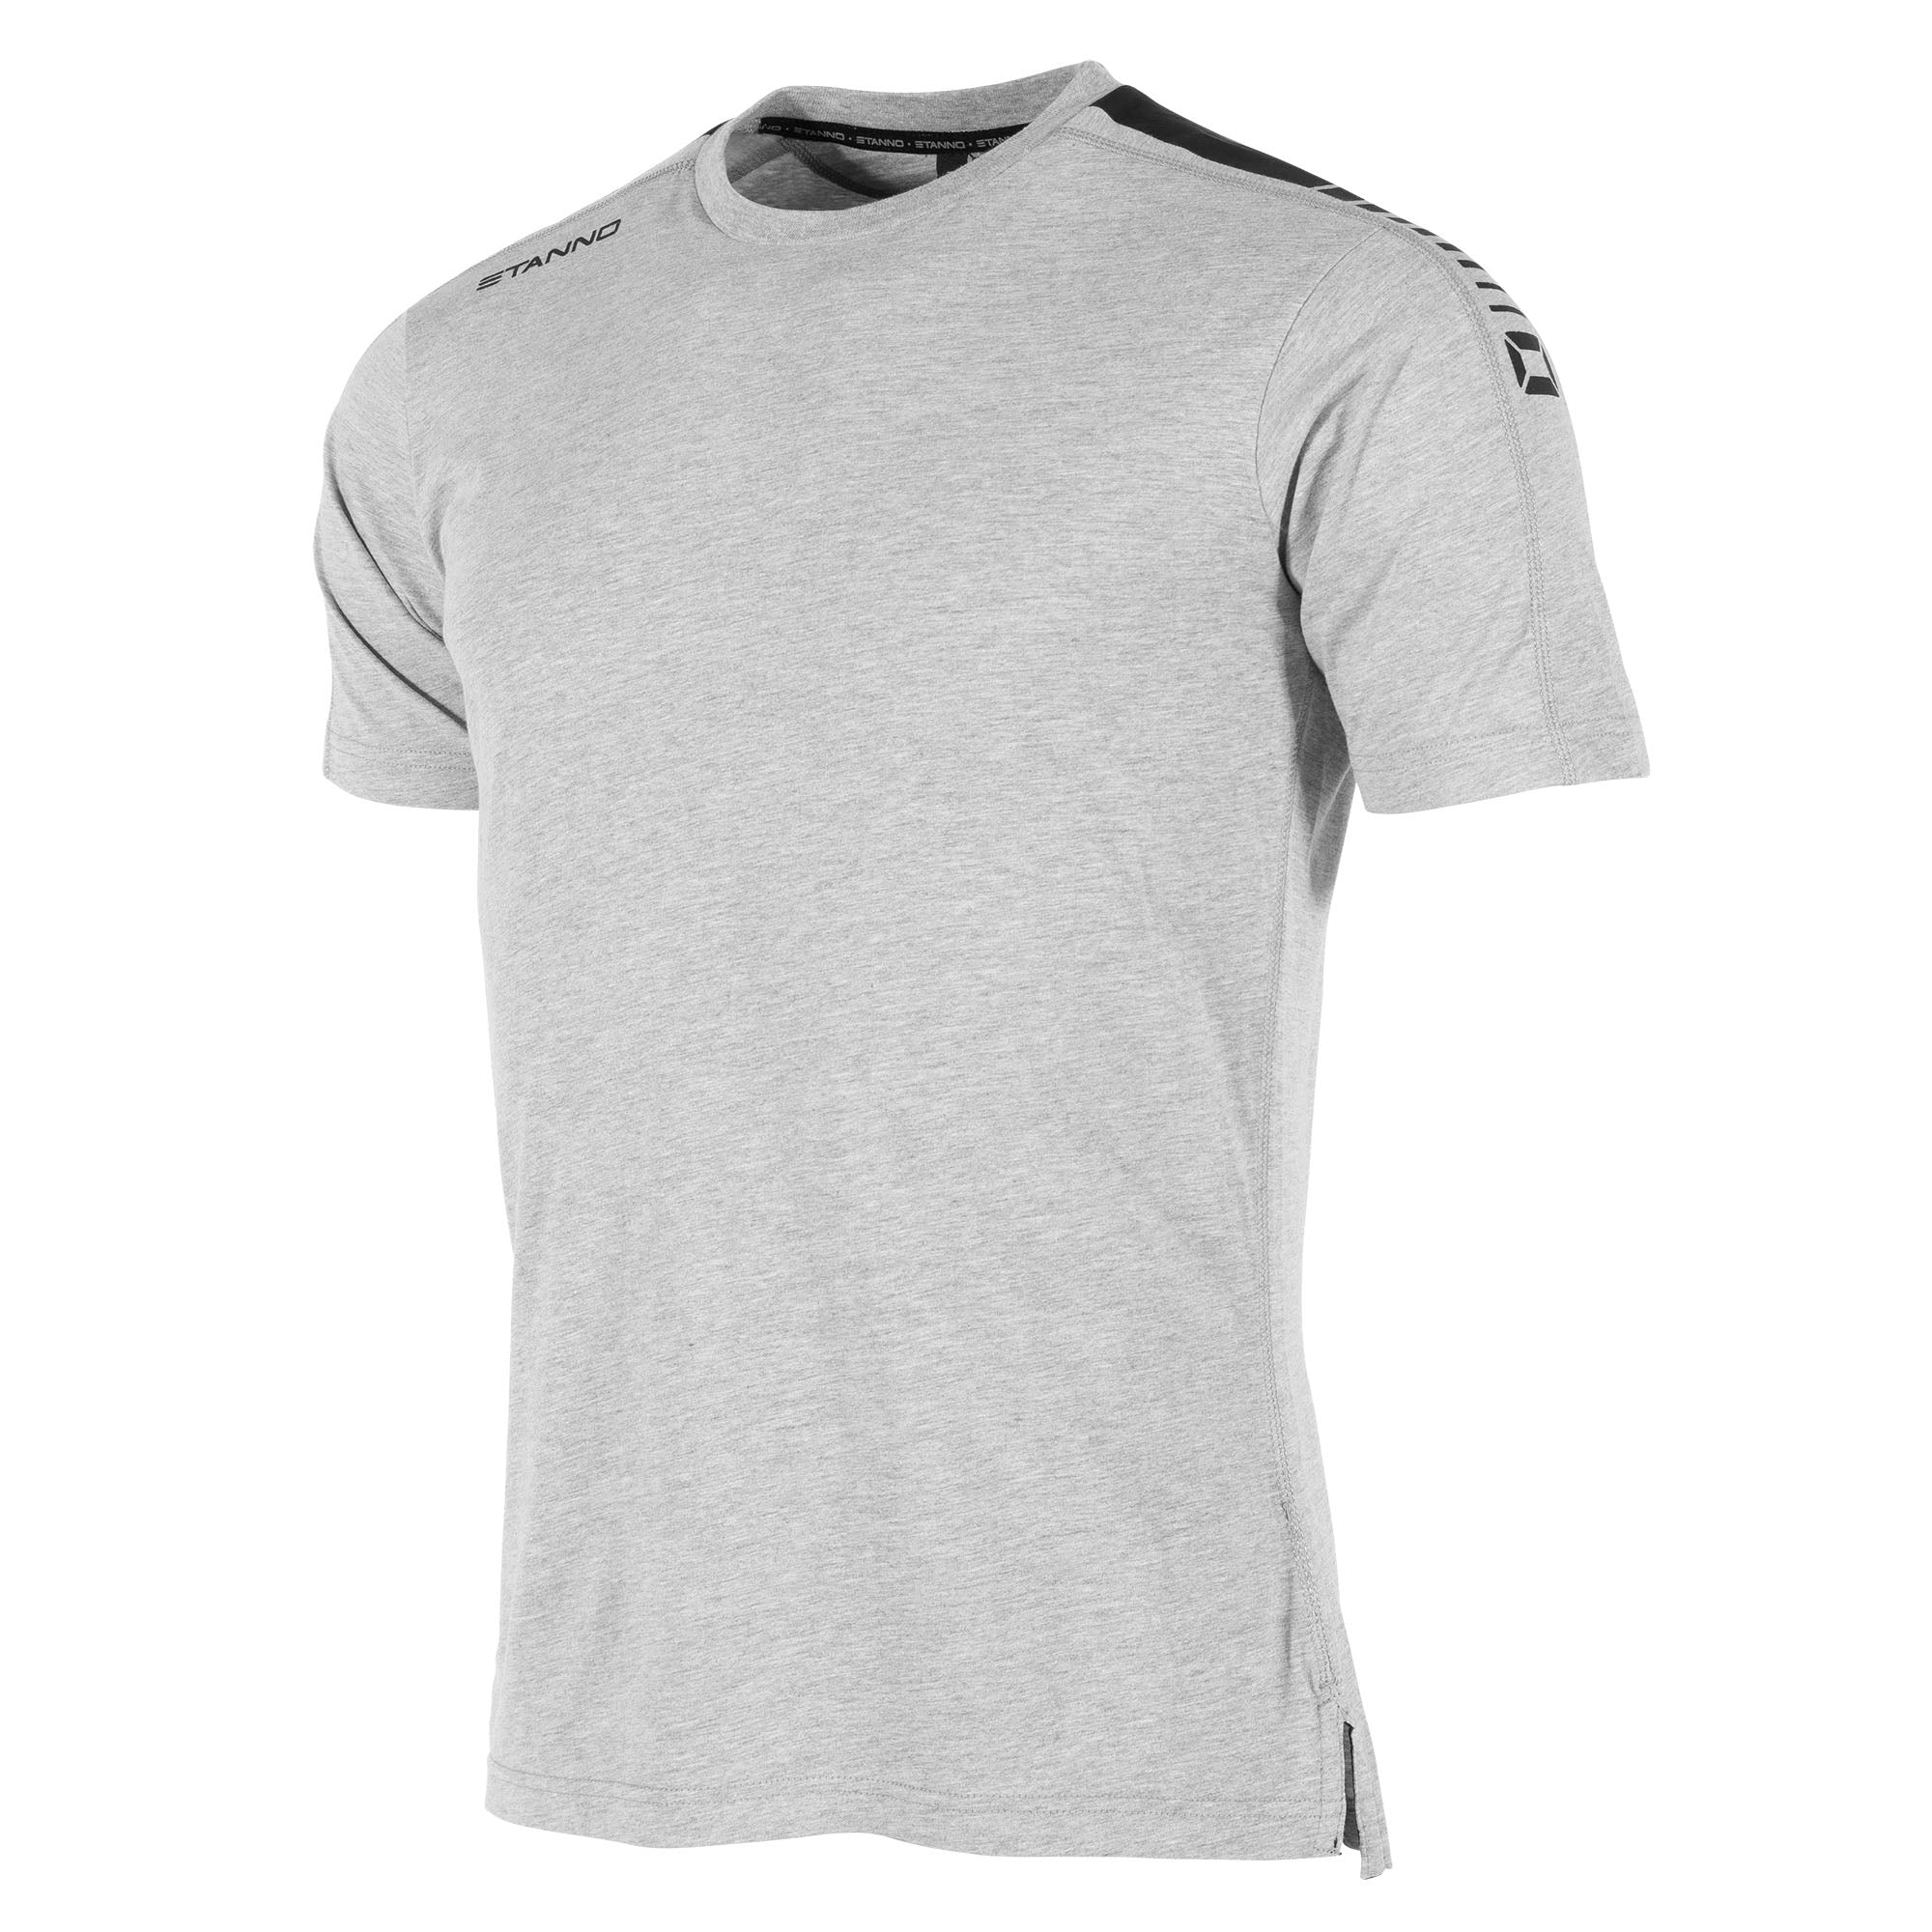 Front view of grey Stanno Ease T-Shirt with round neck, side slit design, and black shoulder print.